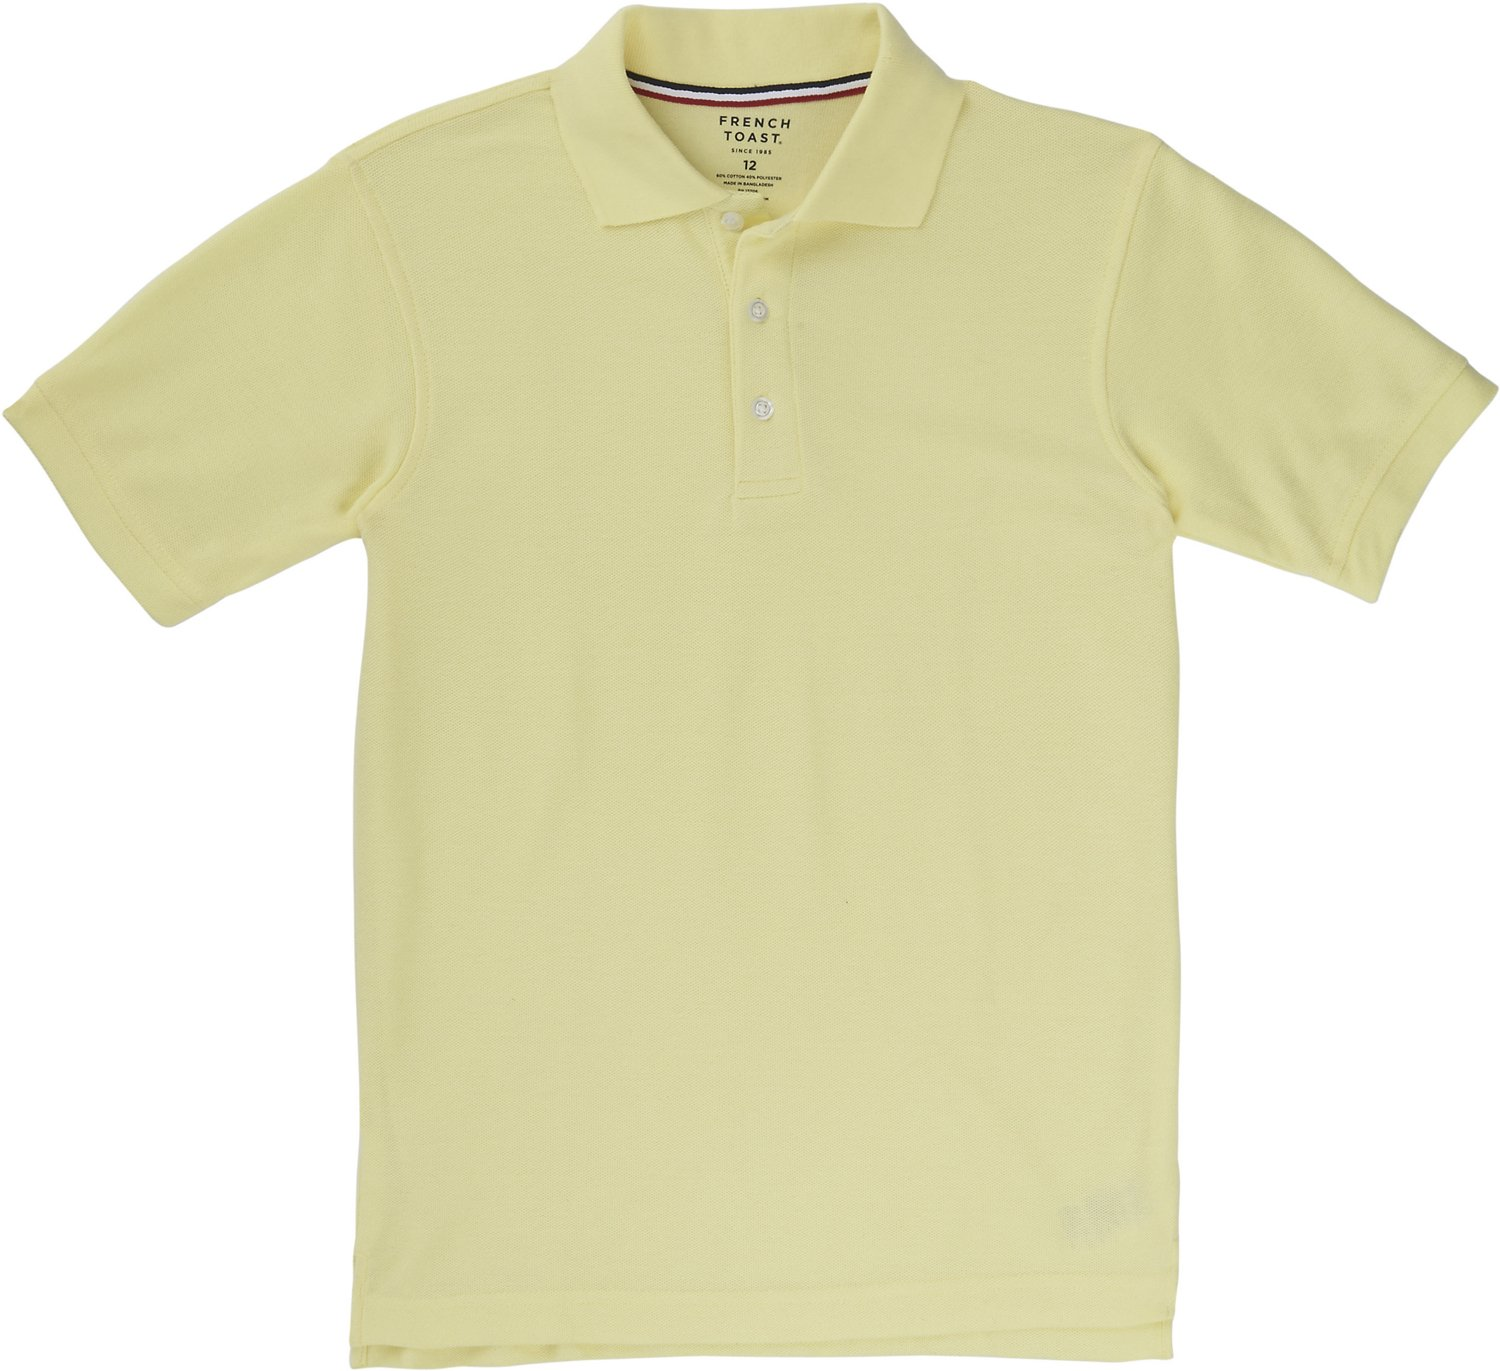 Display product reviews for French Toast Boys  Short Sleeve Pique Polo Shirt  This ... c00a4e36d